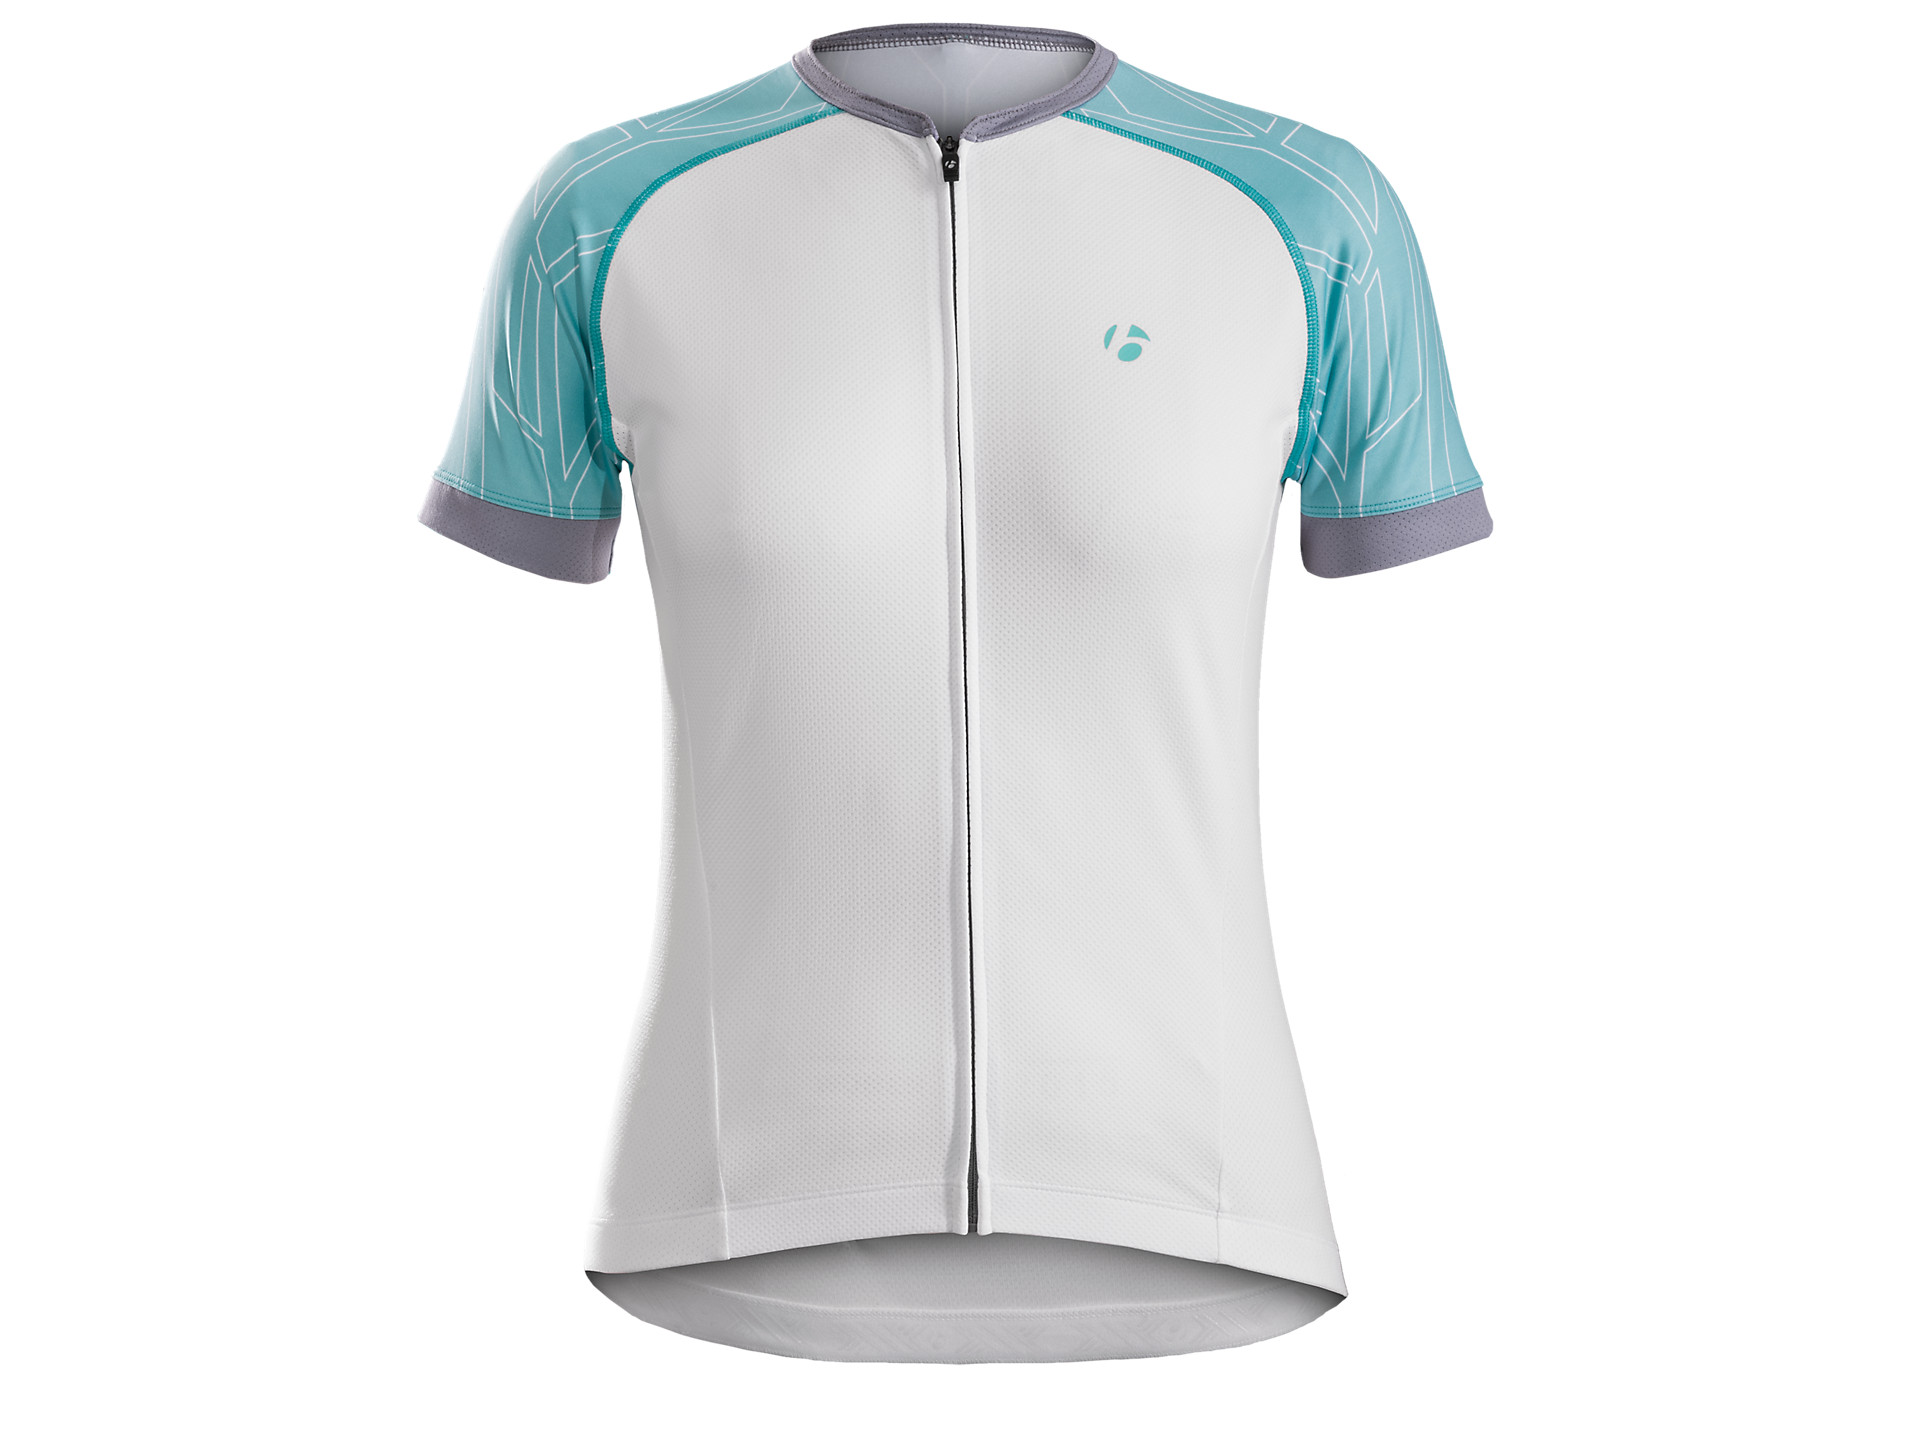 Bontrager Sonic Women s Cycling Jersey.  89.99 -  94.99 · SALE · Bontrager  Vella Thermal Long Sleeve Jersey 083690ef9